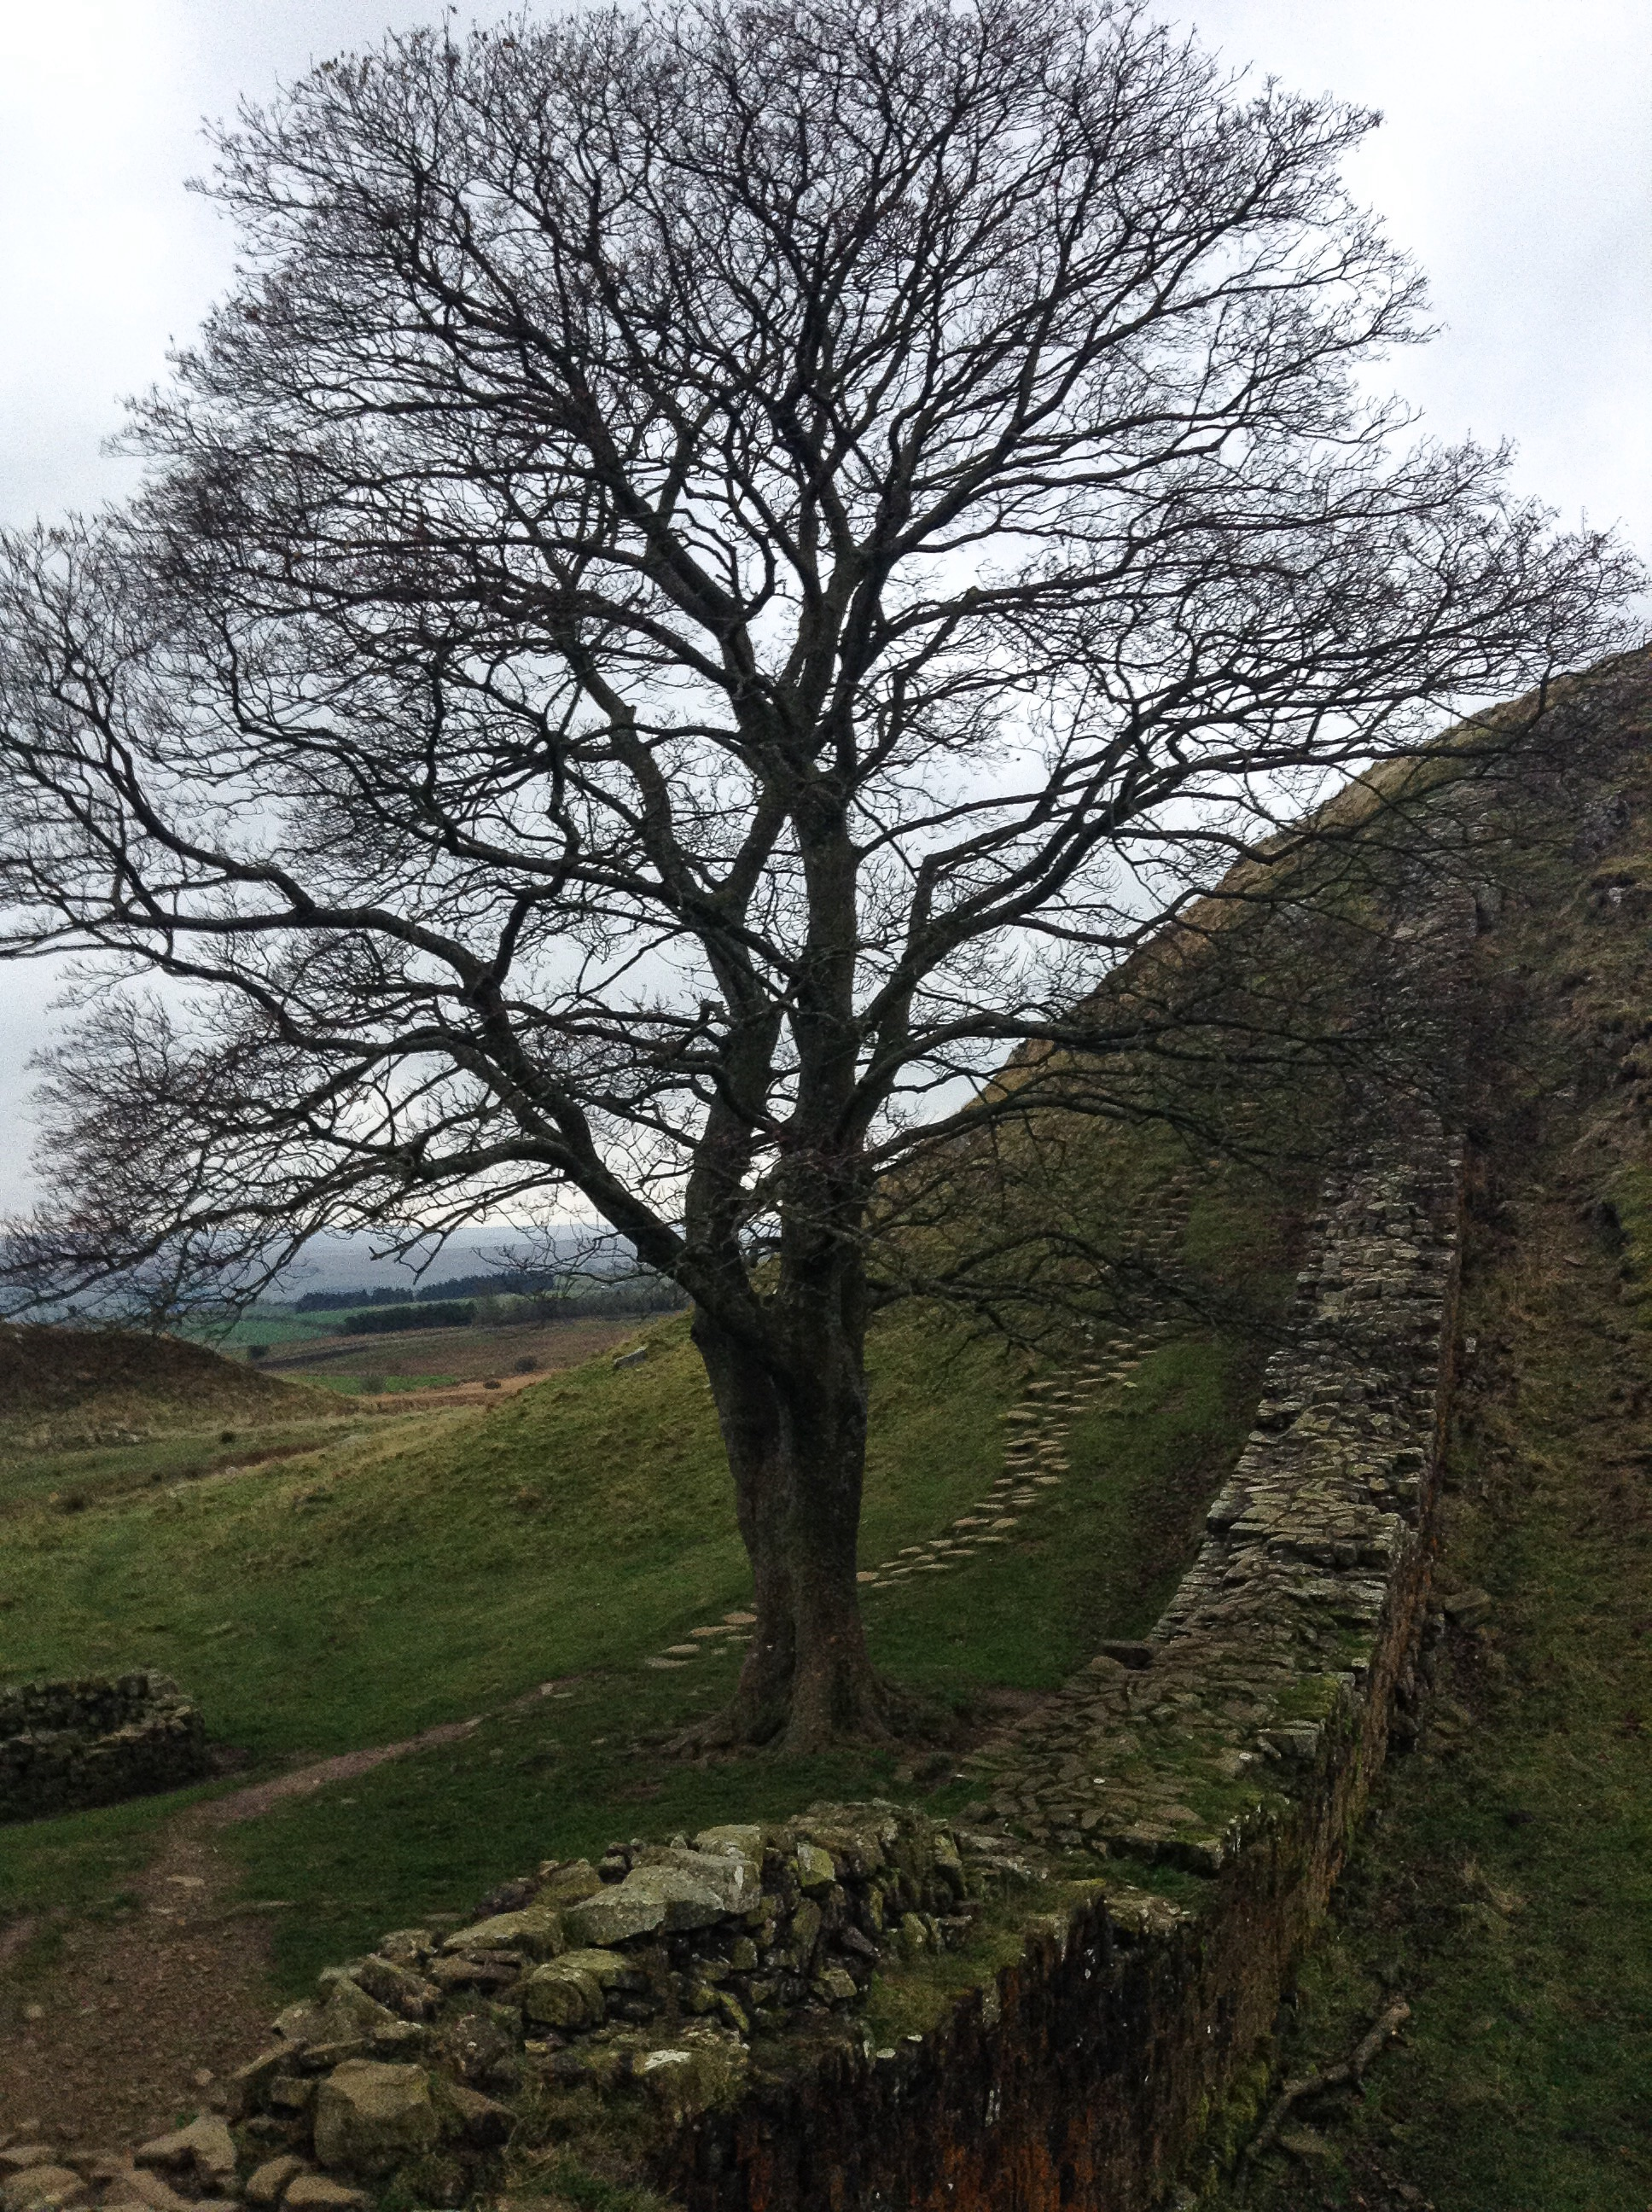 Sycamore Gap along Hadrian's Wall, used as one of the filming locations in Robin Hood: Prince of Thieves